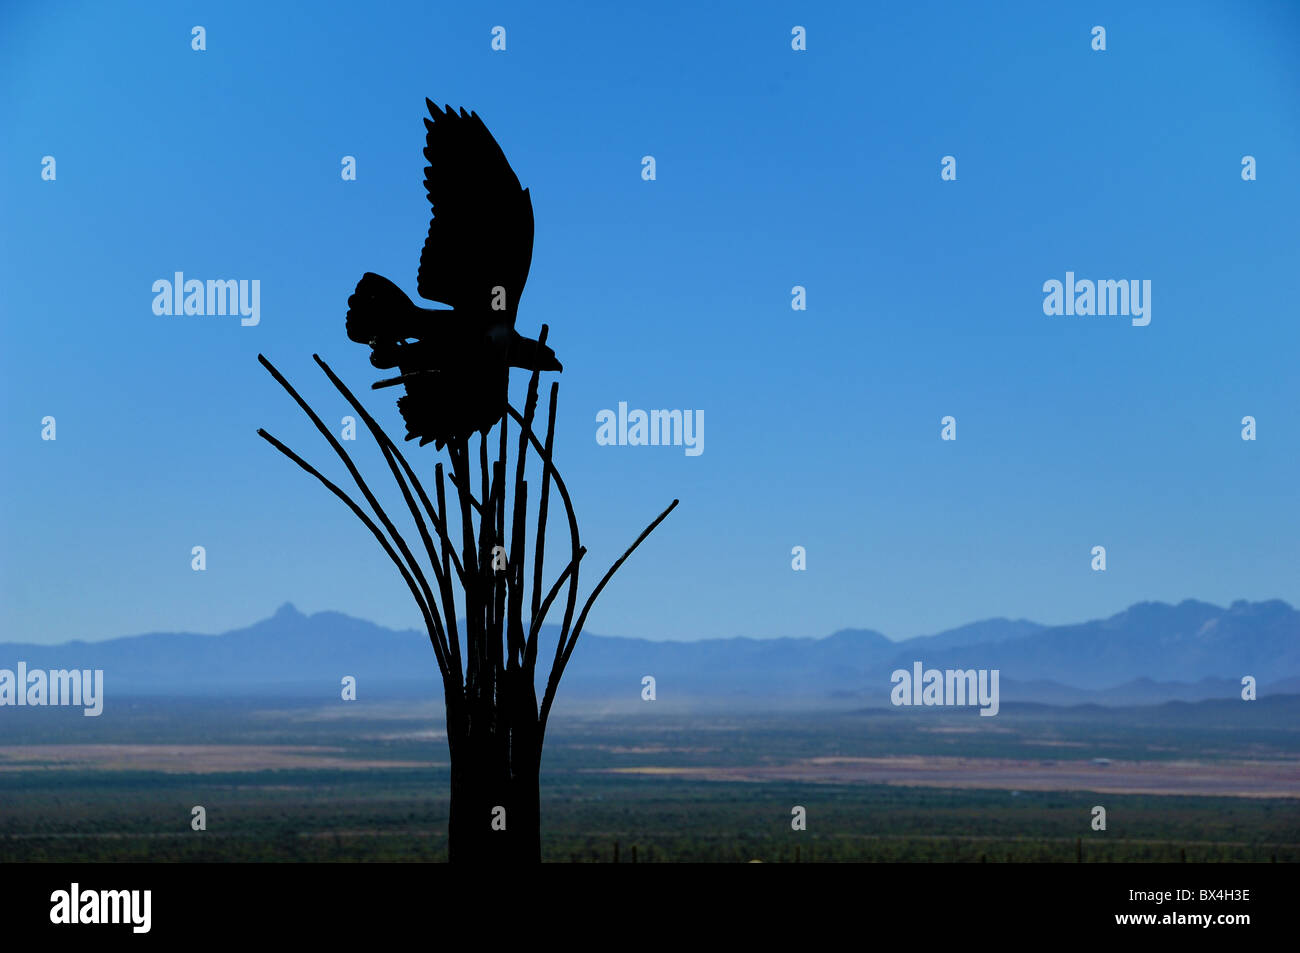 Sculpture of a bird taking off from the skeleton of a Saguaro Cactus at The Desert Museum, near Tucson, Arizona, - Stock Image